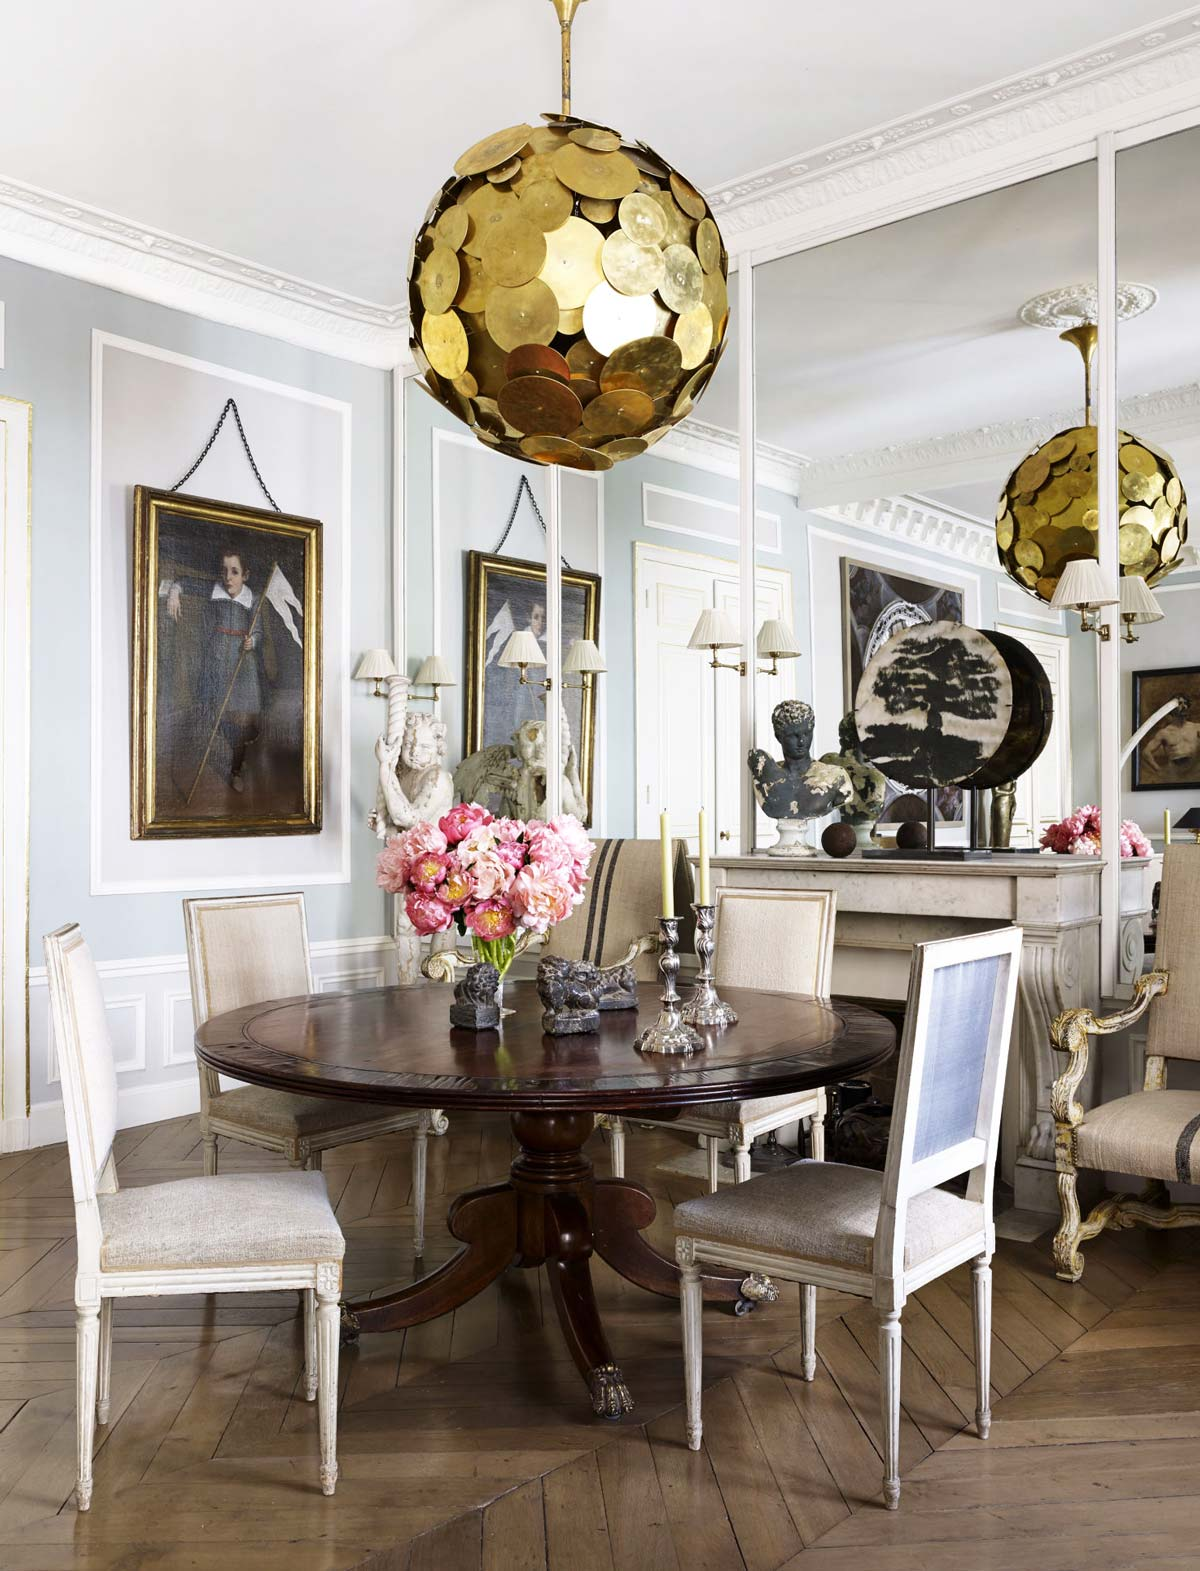 Chic french dining room with modern chandelier